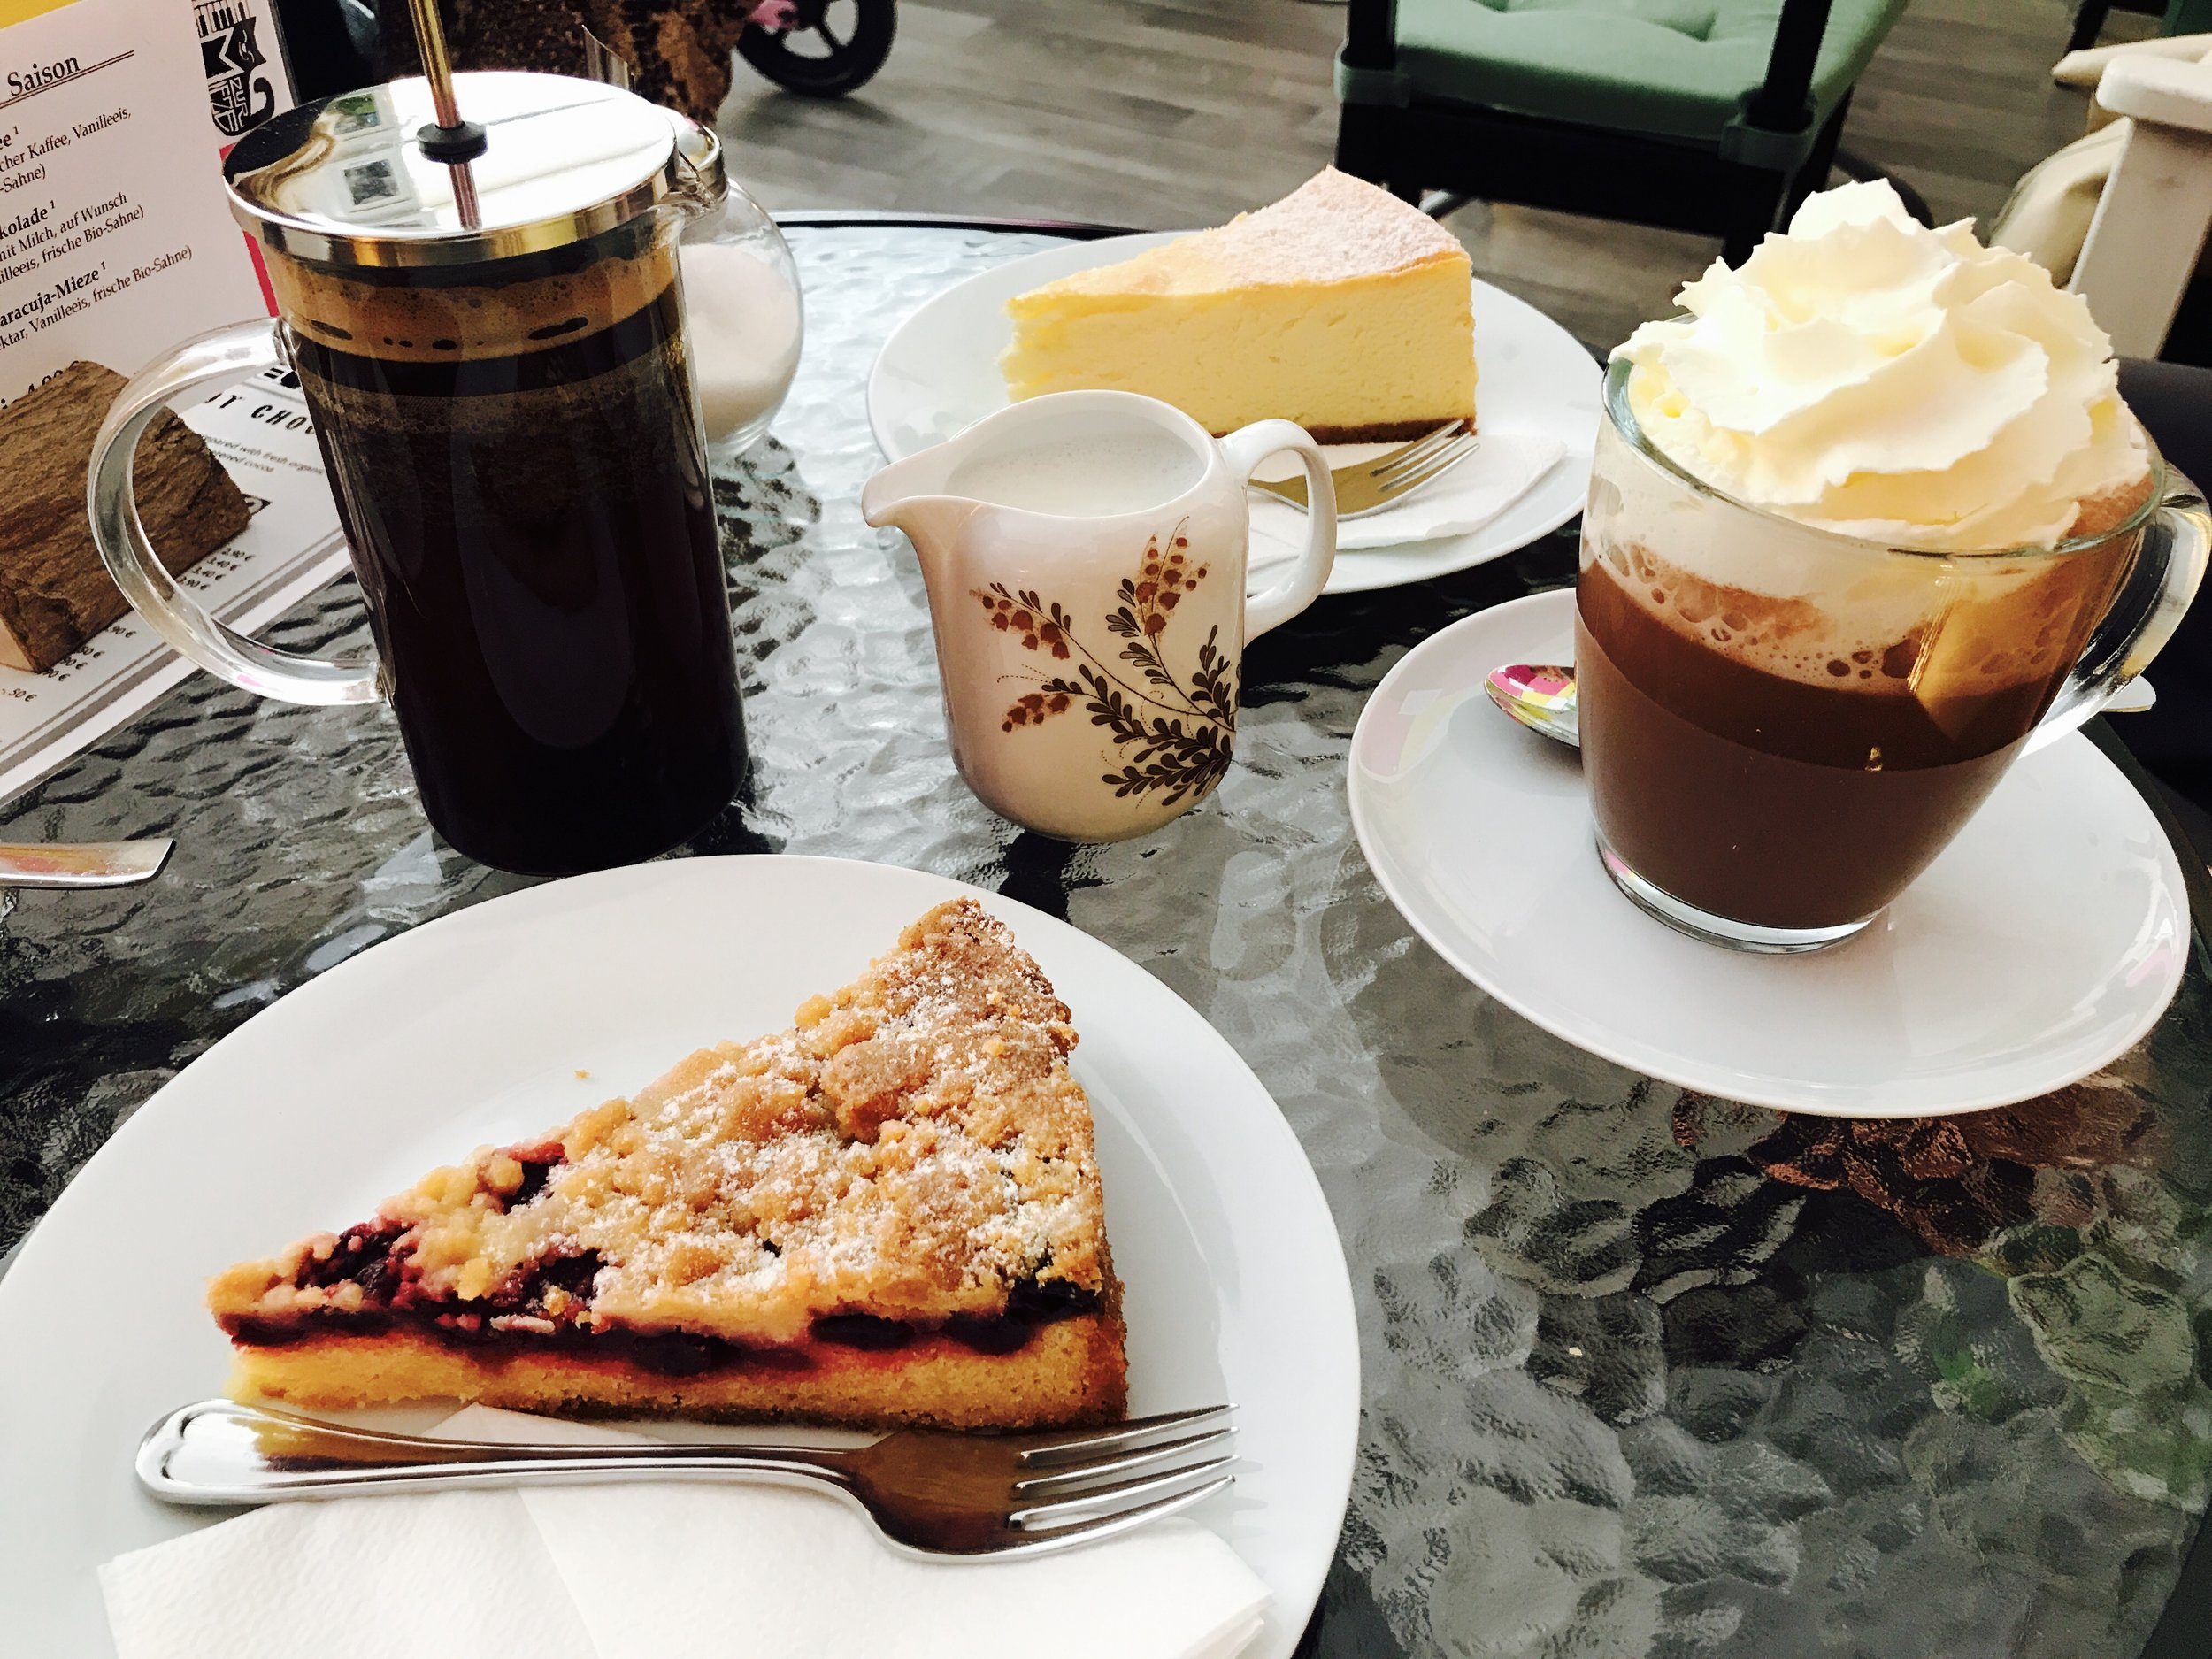 Zur Mieze is known for its award-wining cheesecake and specialty coffee served French Press style